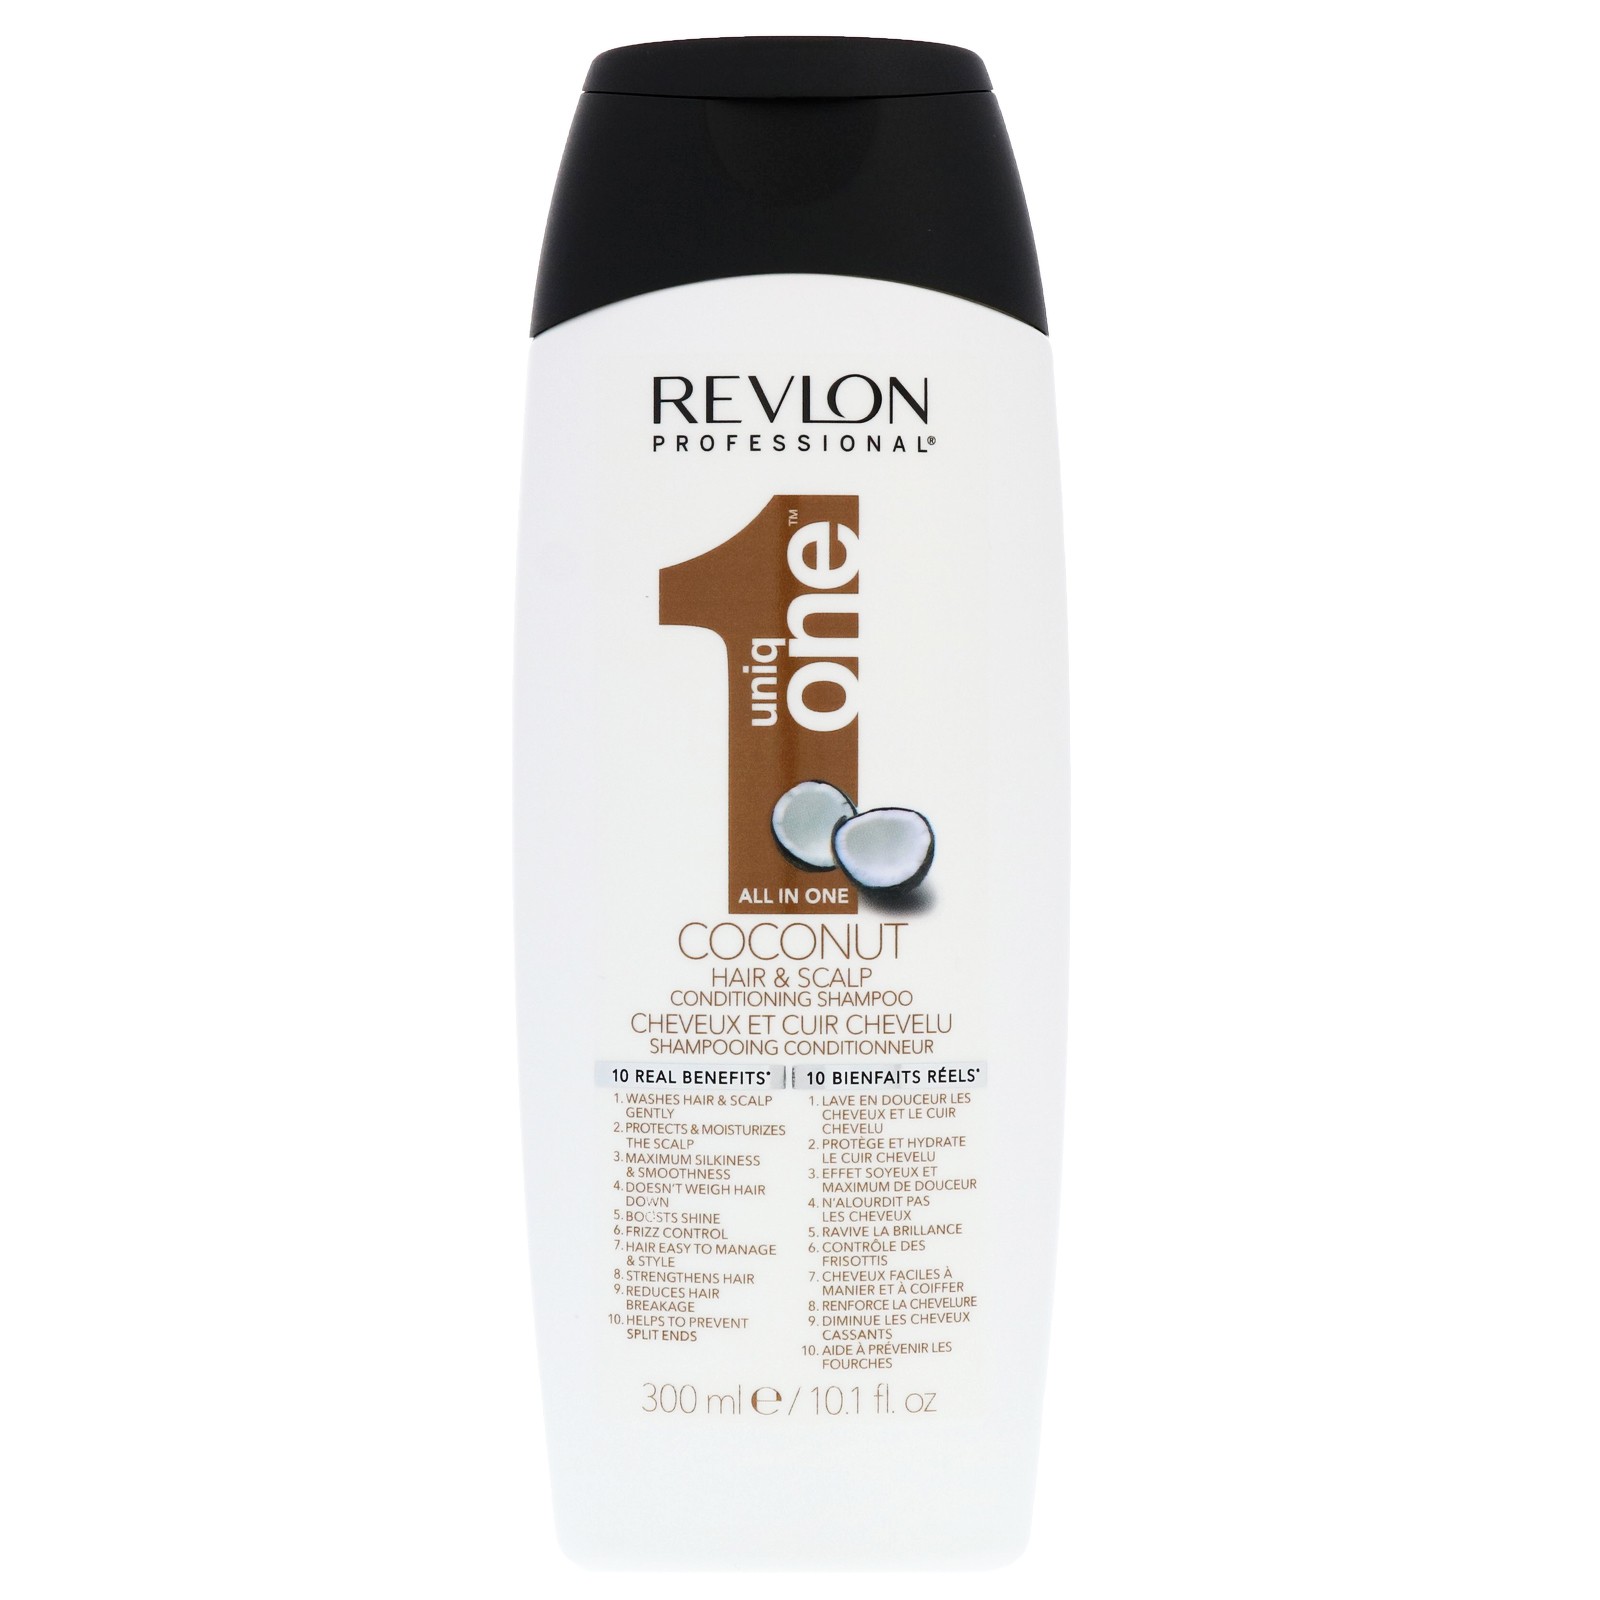 Revlon Professional Uniq One Coconut Conditioning Hair & Scalp Shampoo 300ml